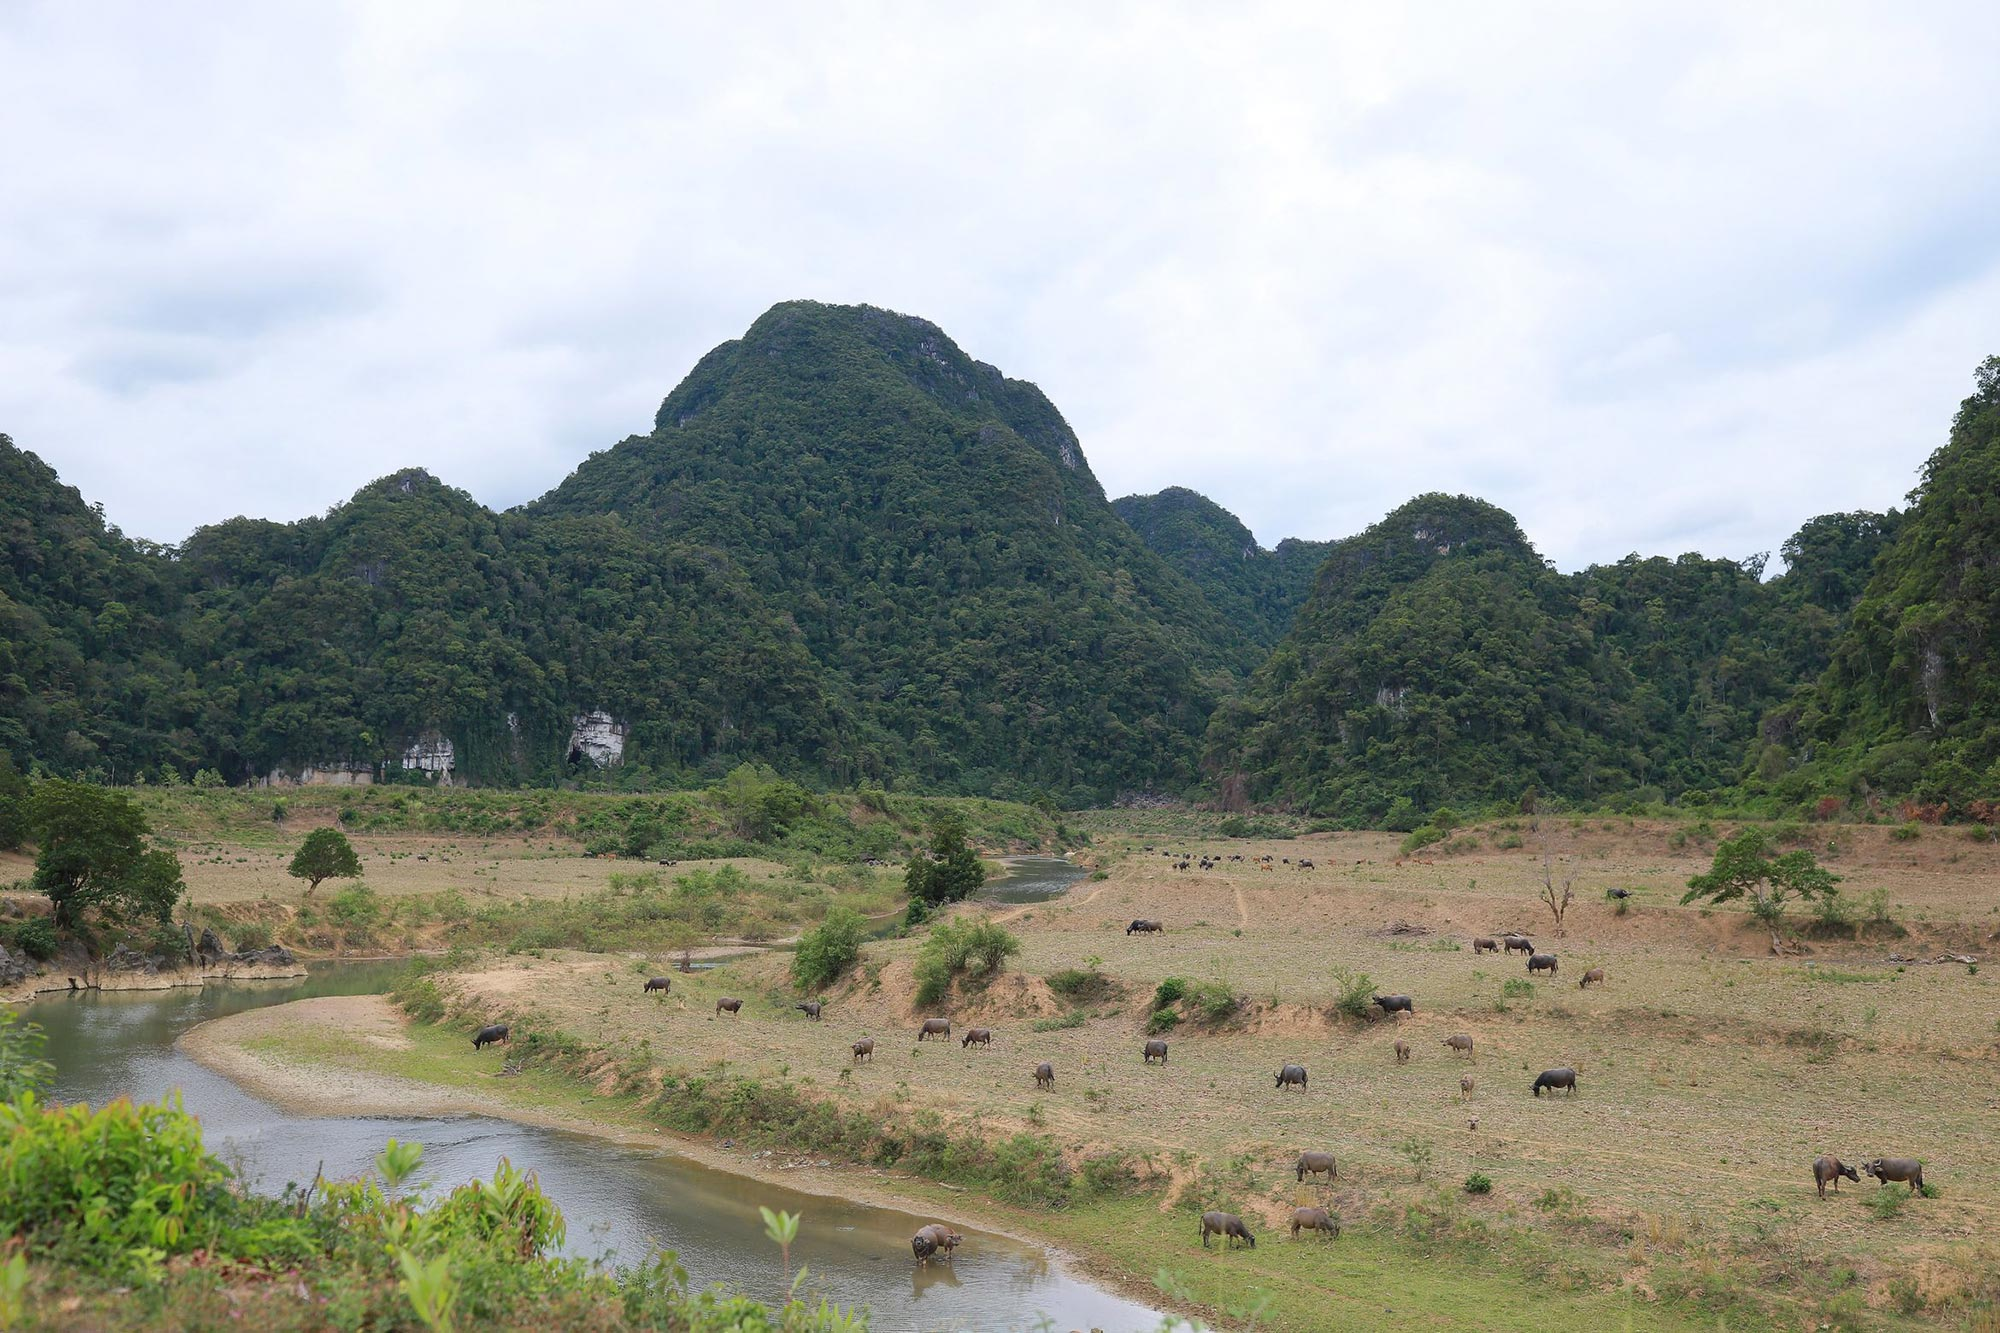 The picturesque landscape surrounding the village of Tan Hoa, where adventurers set off for the Tú Làn limestone caves